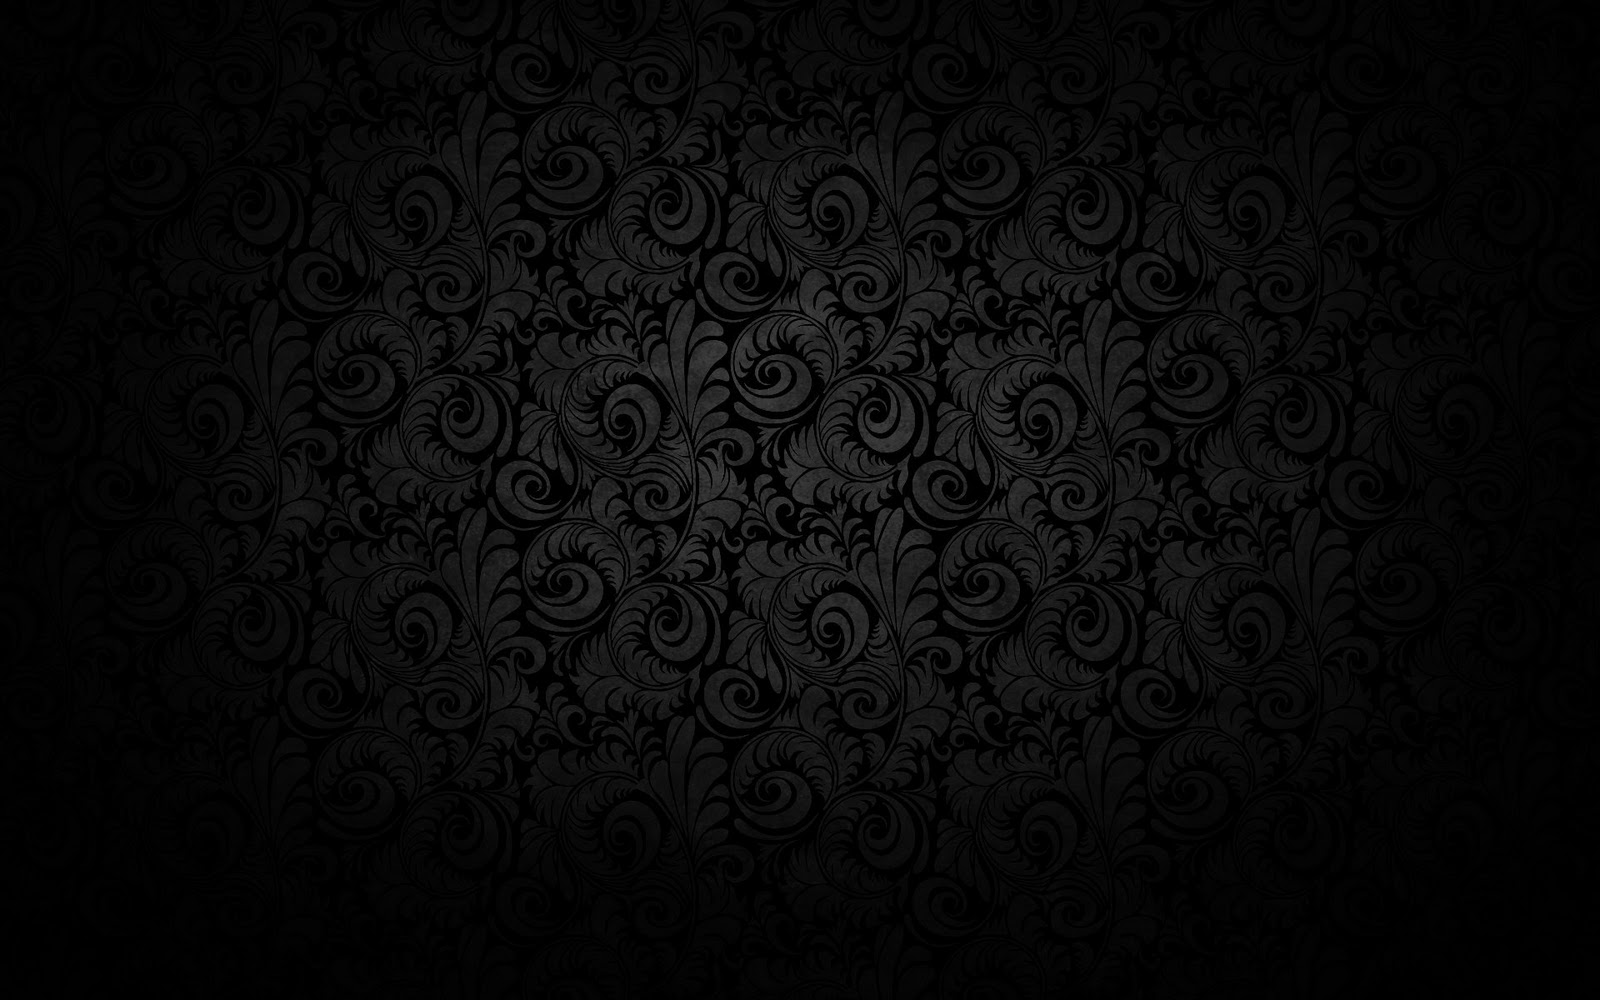 uSr9bZA-fancy-background-images | Miguel Montalban